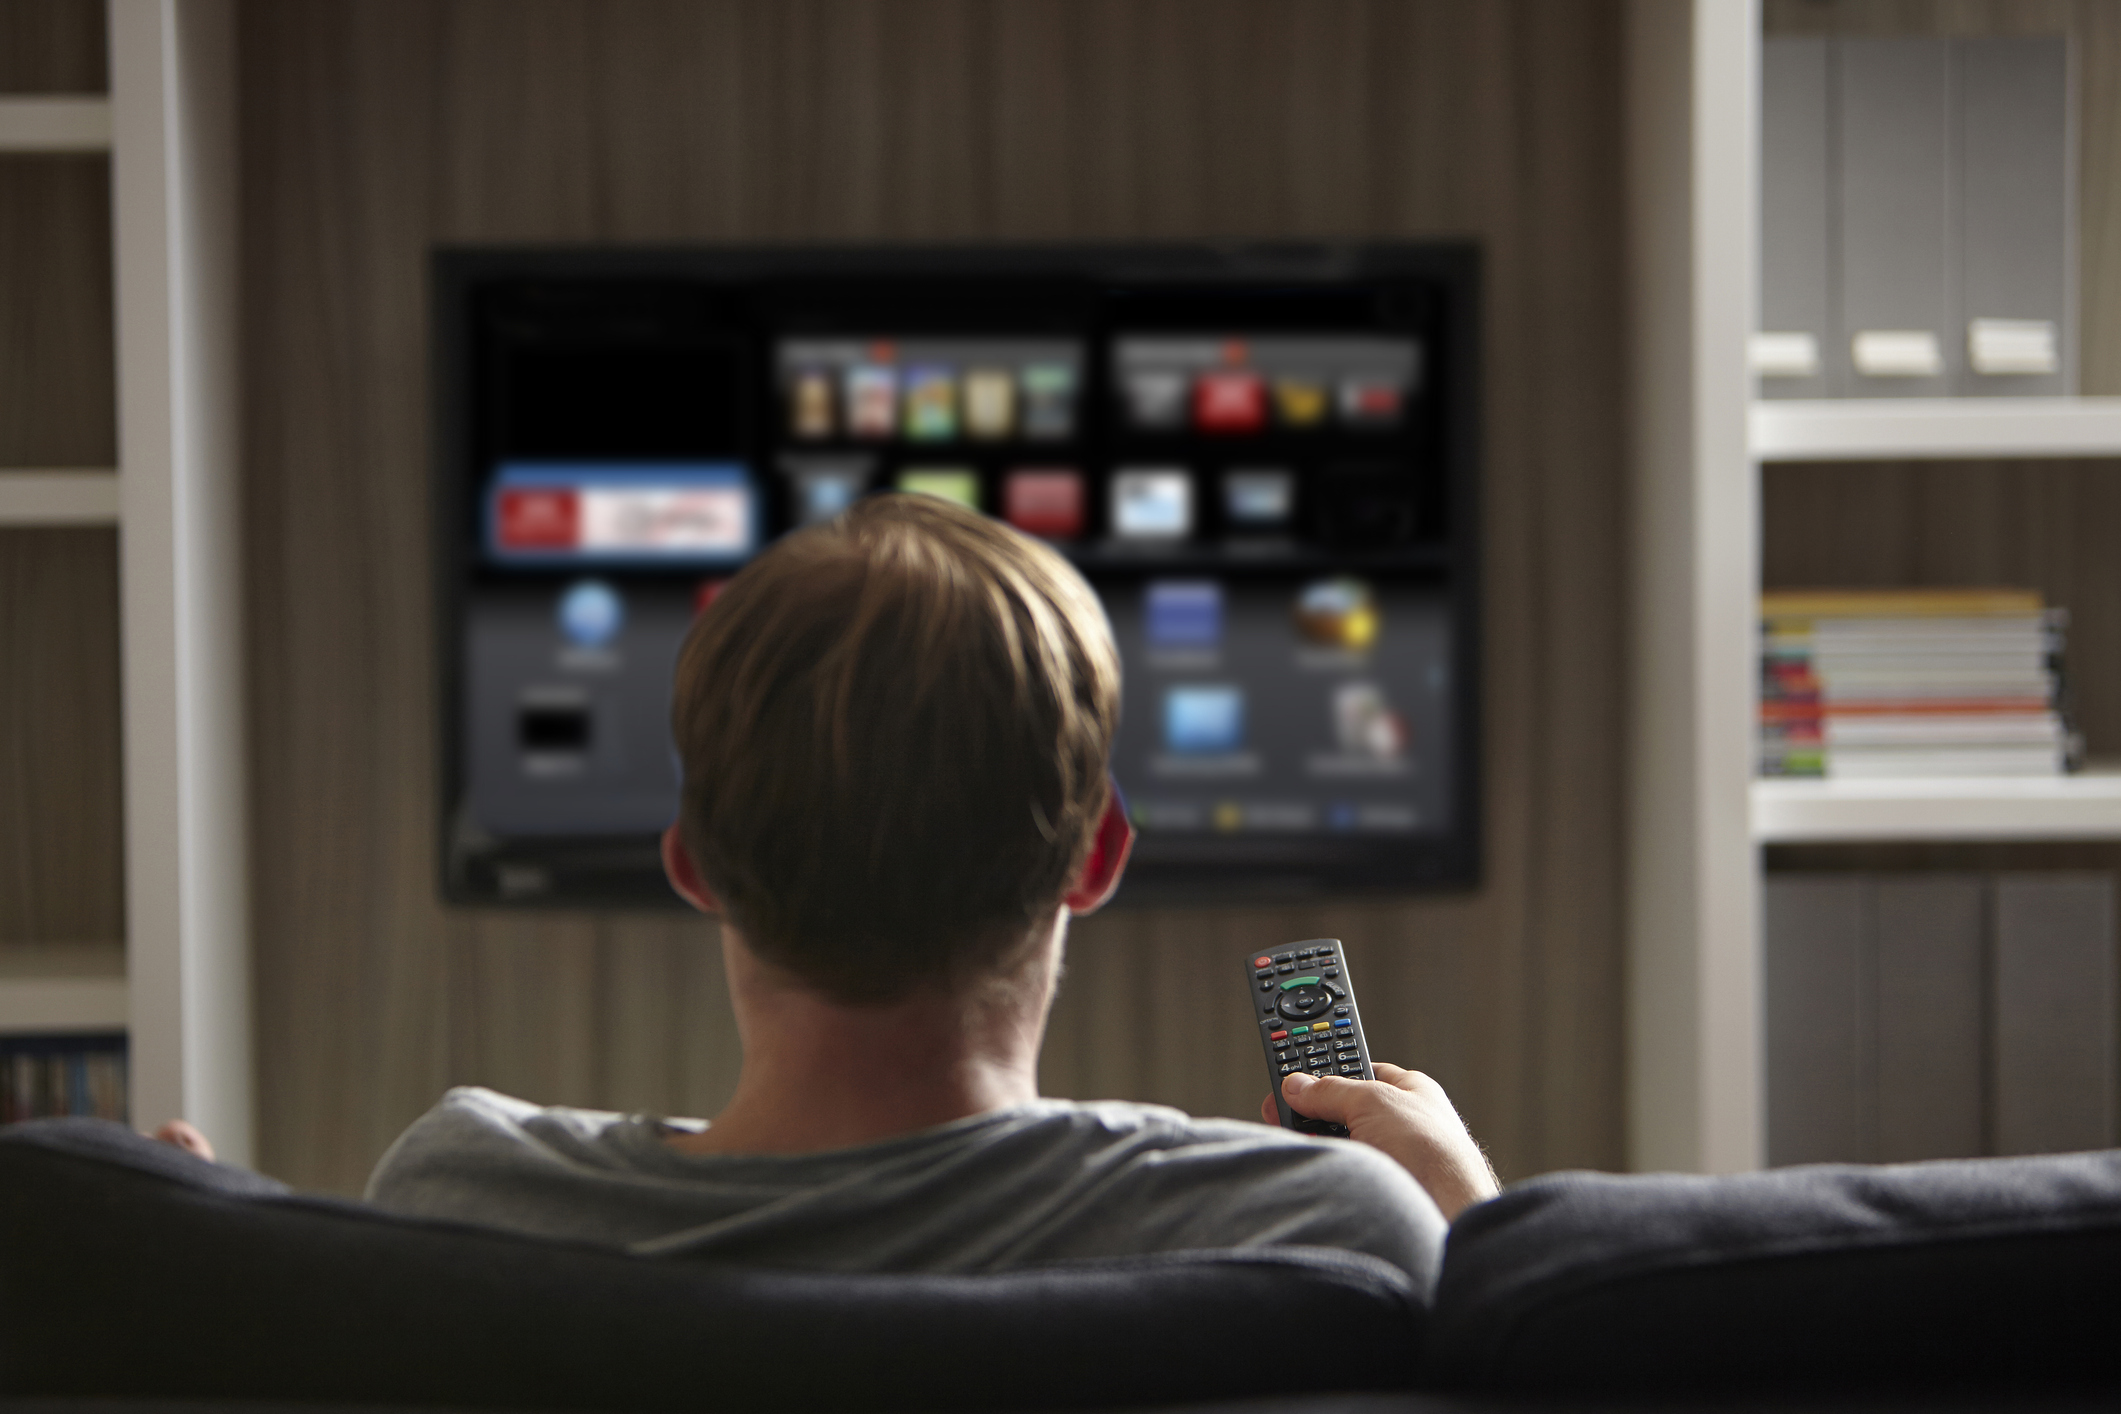 moblyft connected tv advertising ott